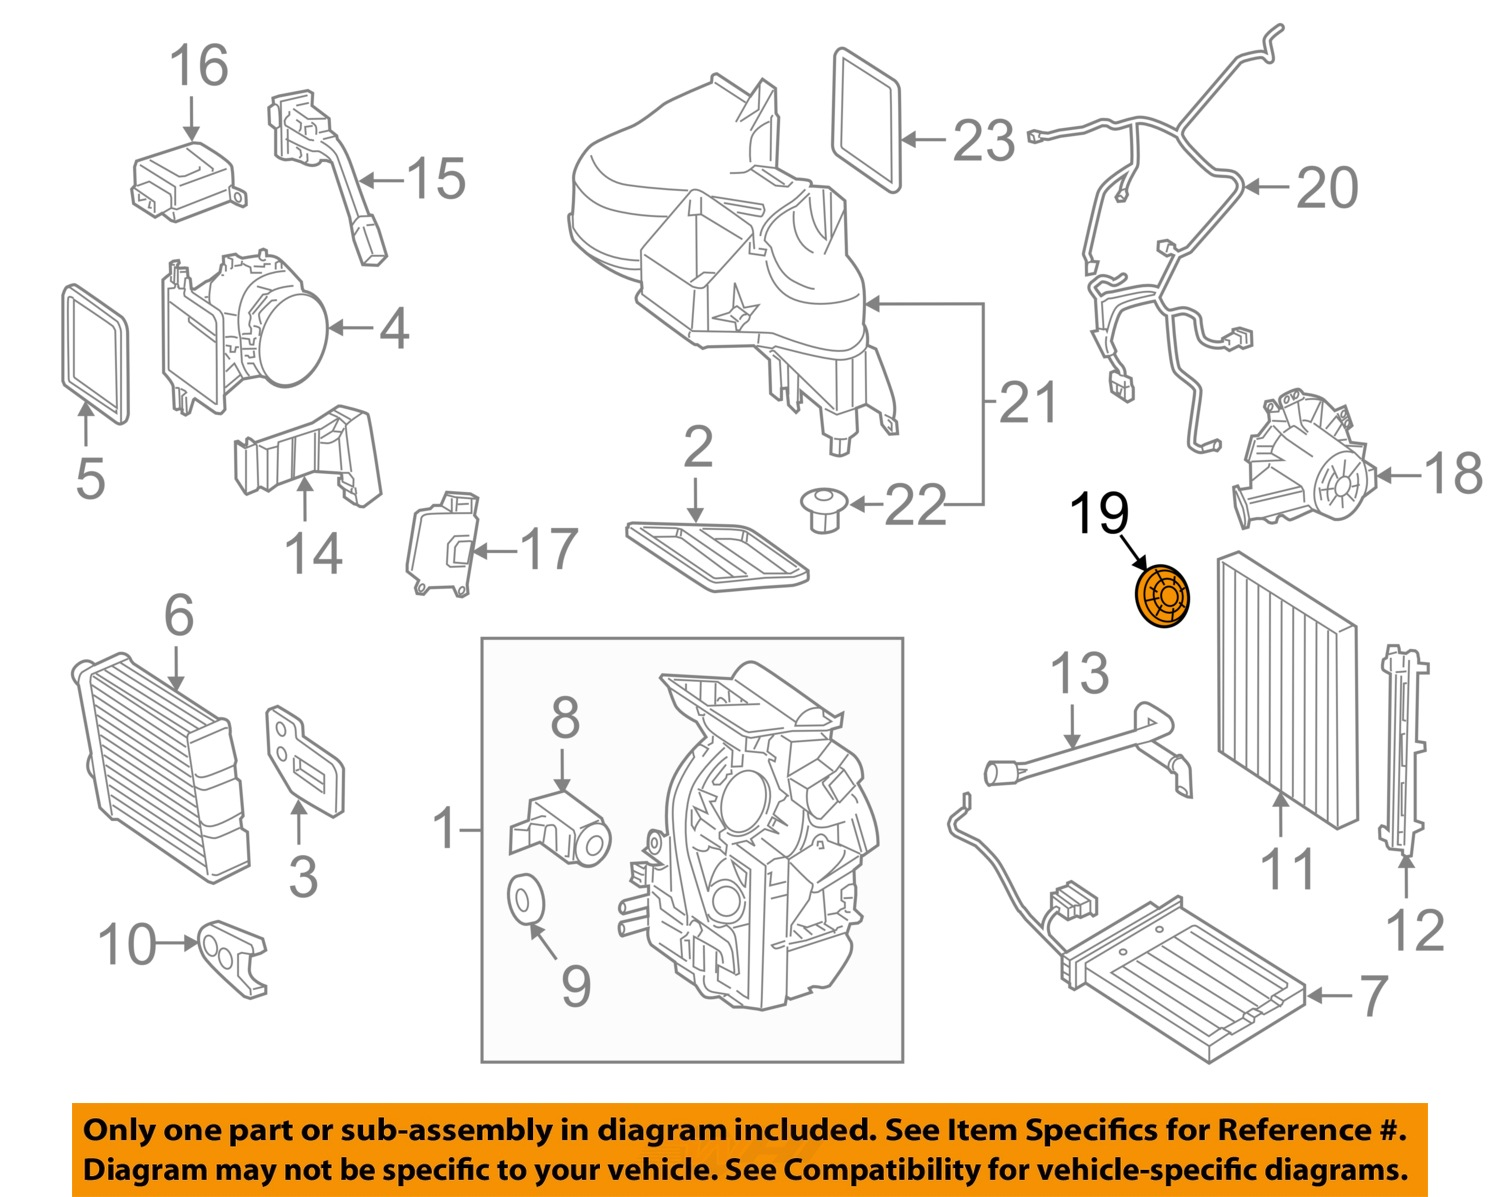 2008 smart car wiring diagram 3 phase water pump control panel engine auto